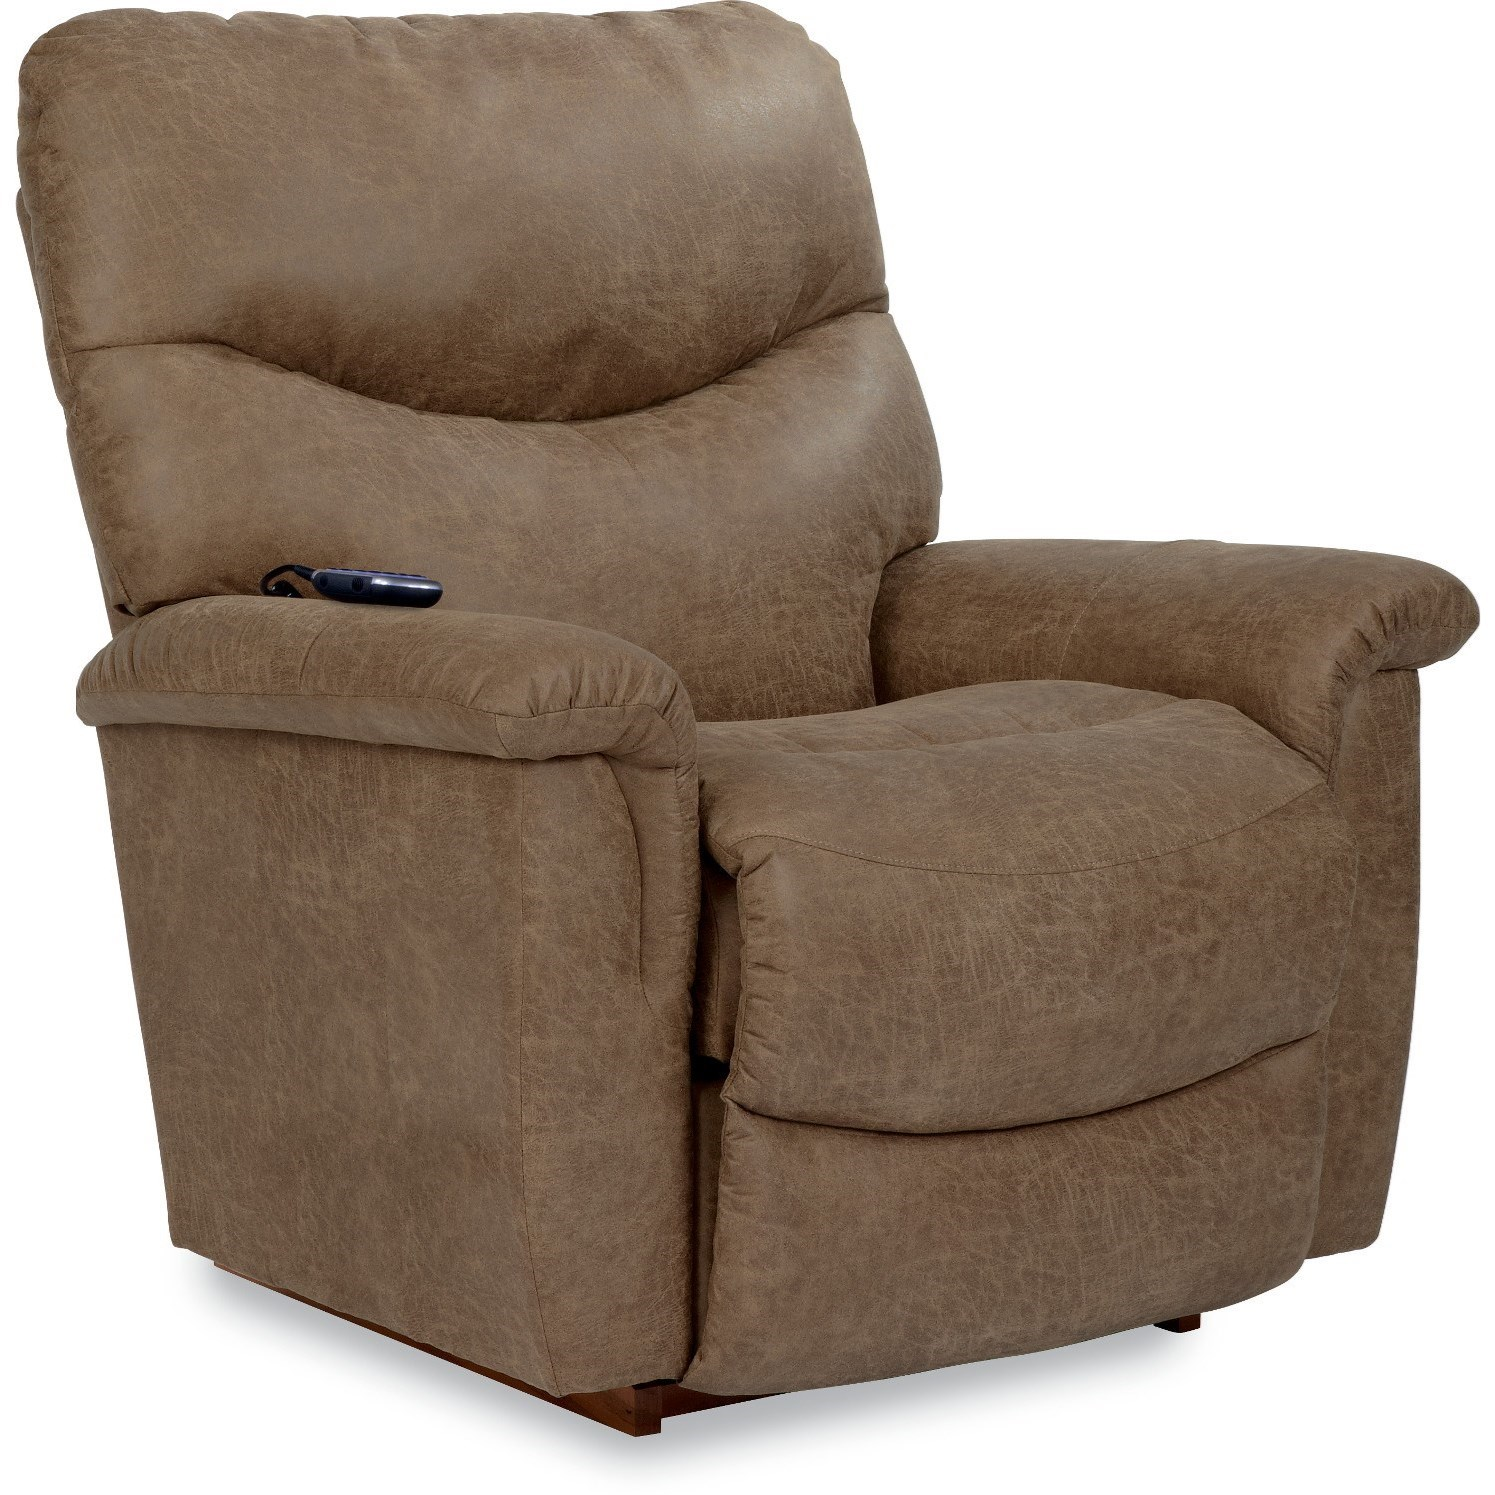 James Silver Power Lift Recliner by La-Z-Boy at Home Furnishings Direct